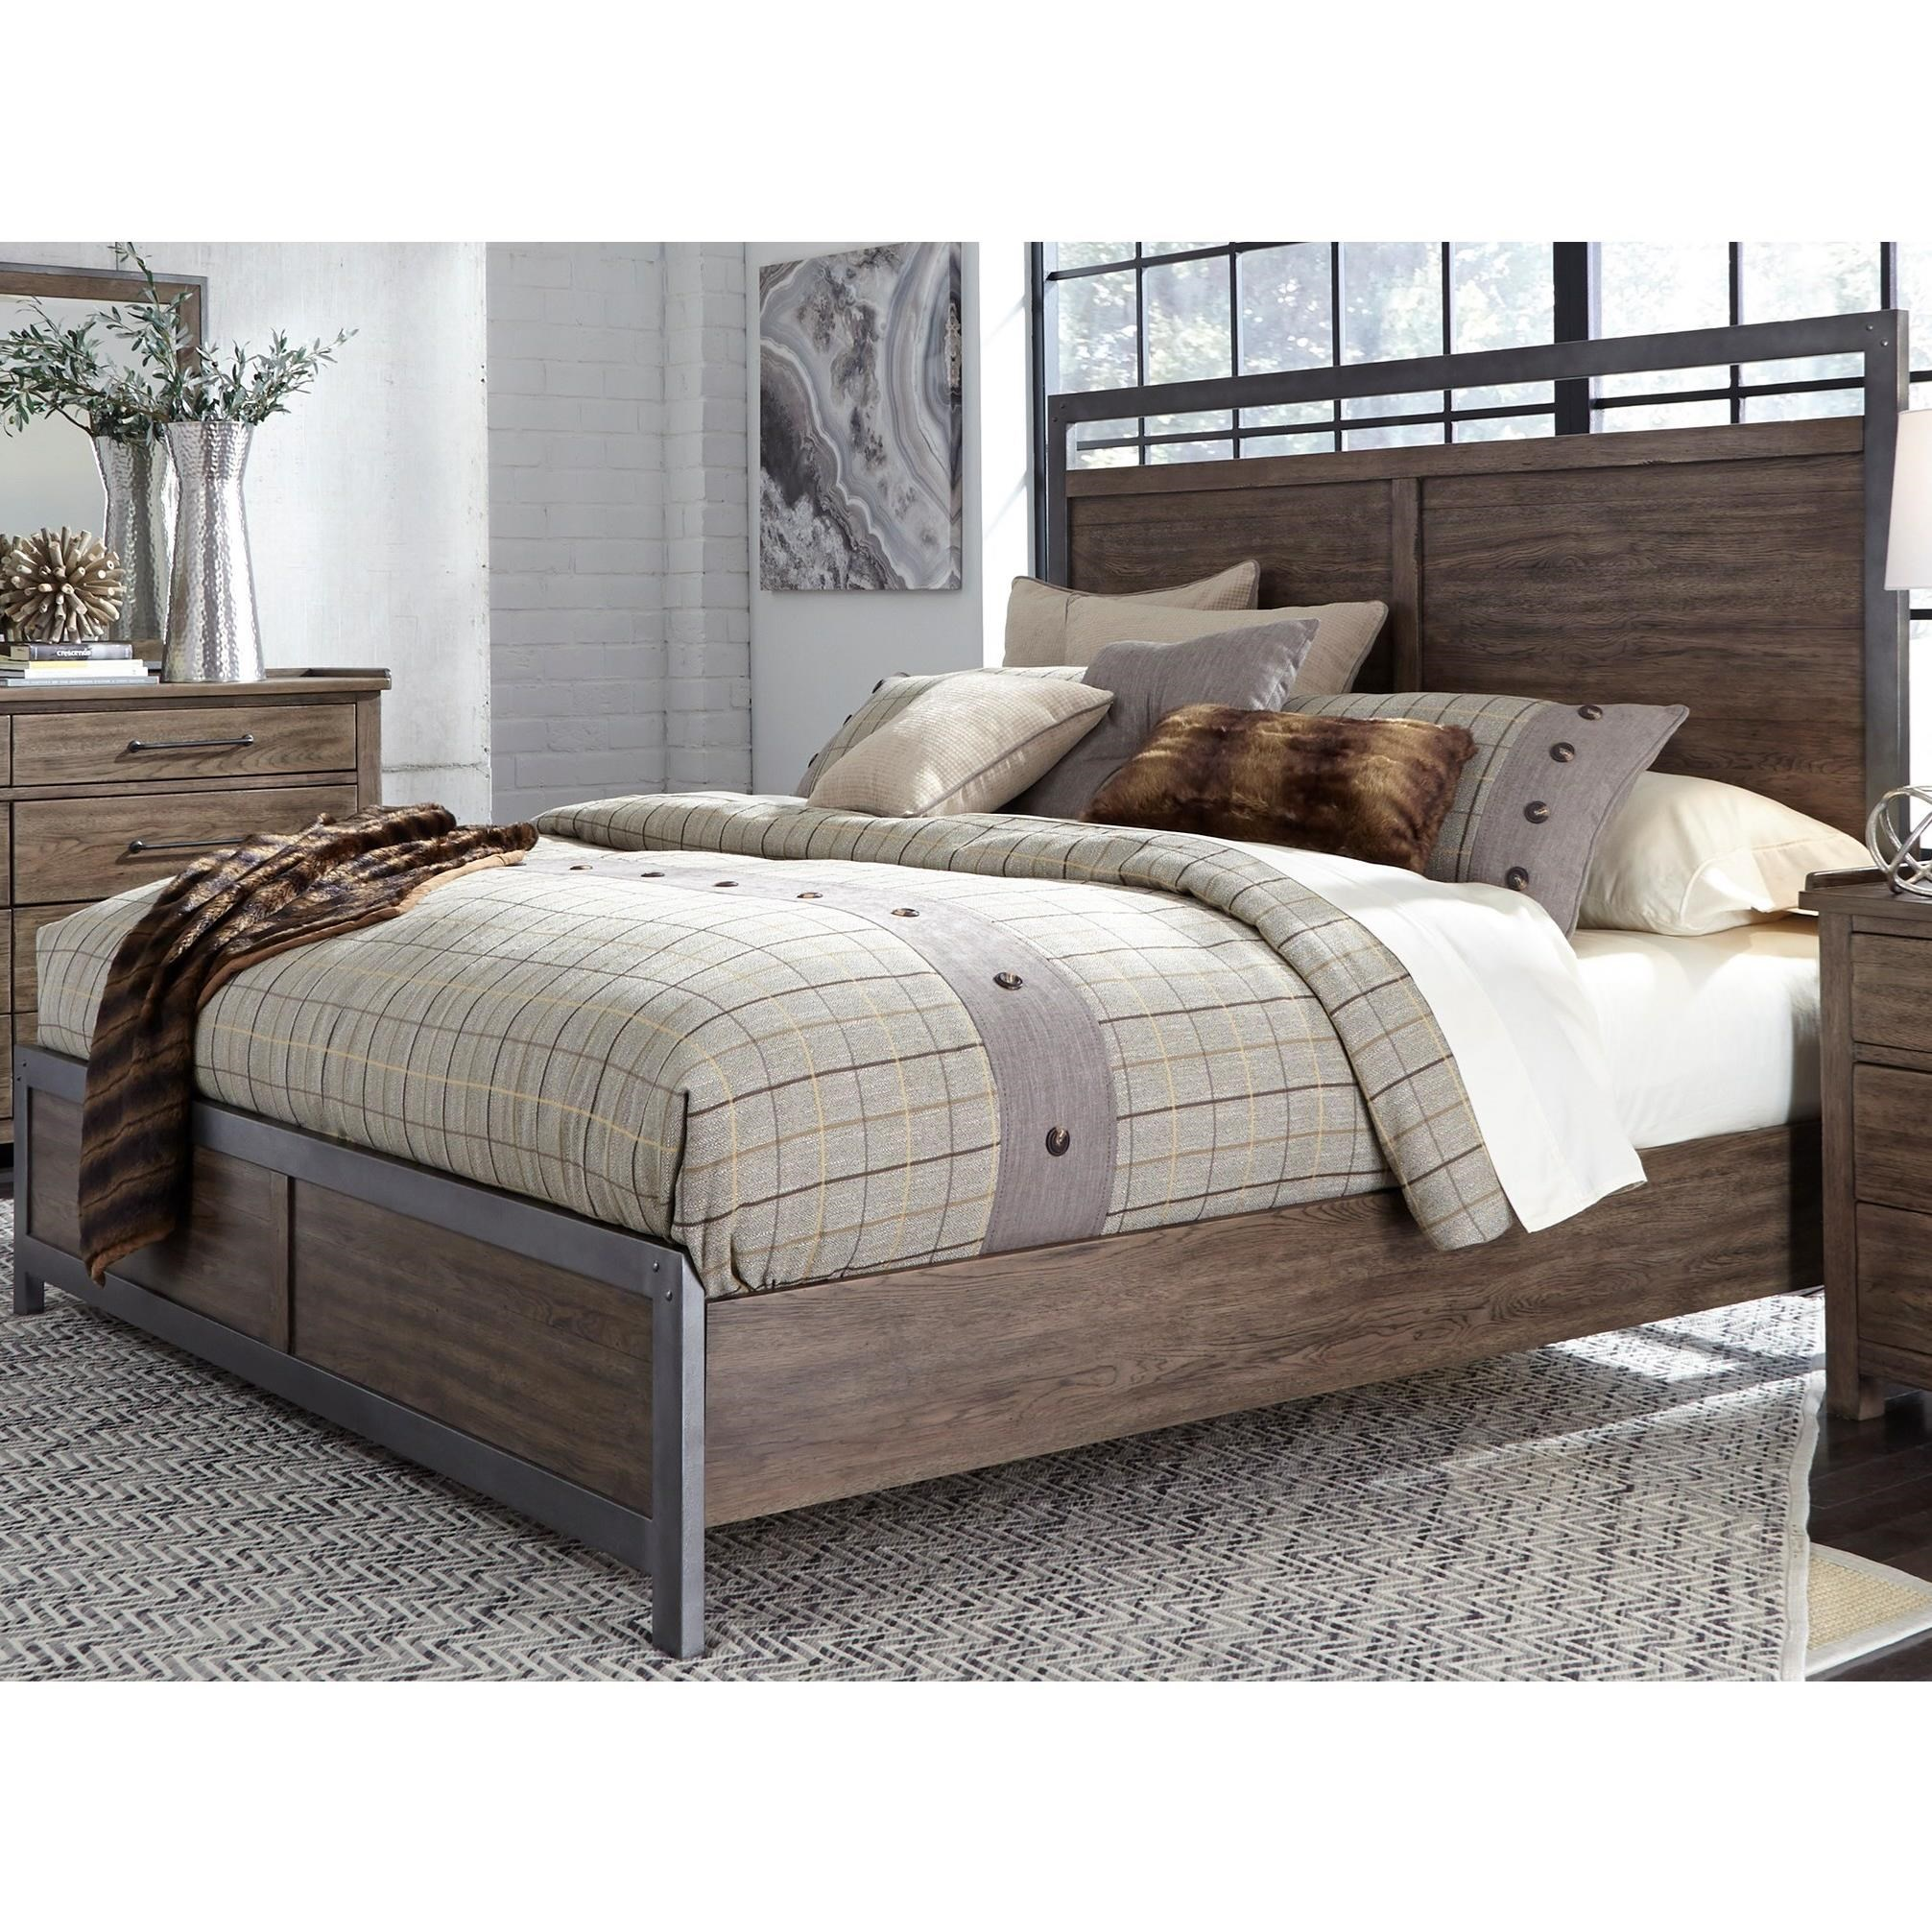 Sonoma Road King Panel Bed  by Liberty Furniture at Northeast Factory Direct